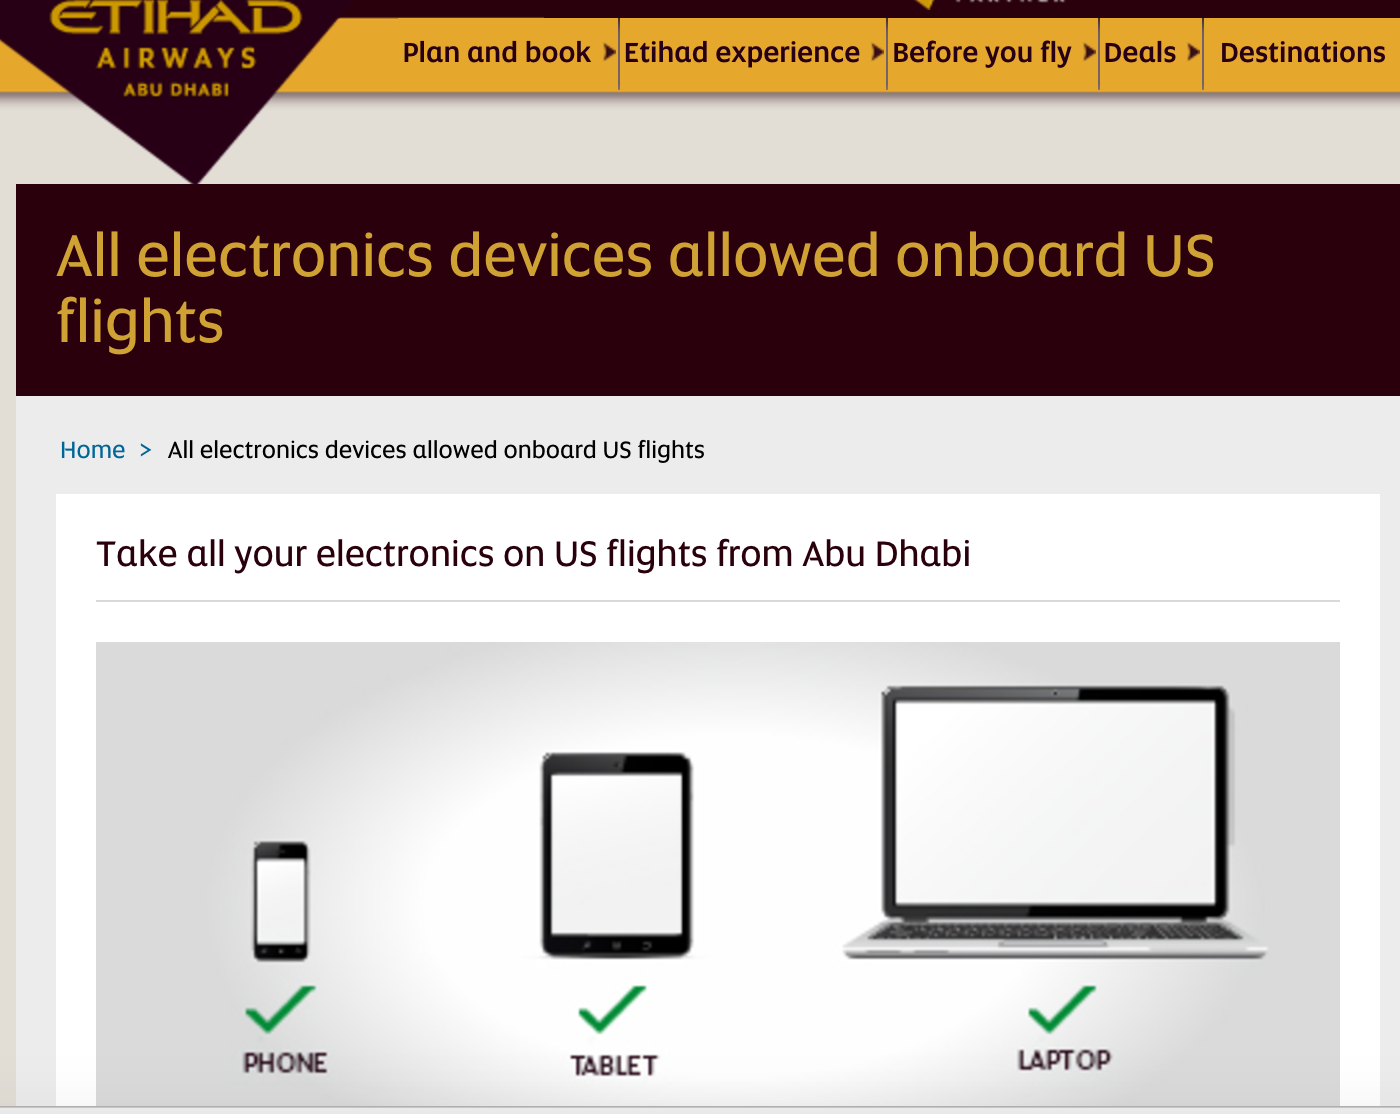 Etihad Airways confirmed the lifting of the electronics ban in a notice on its website